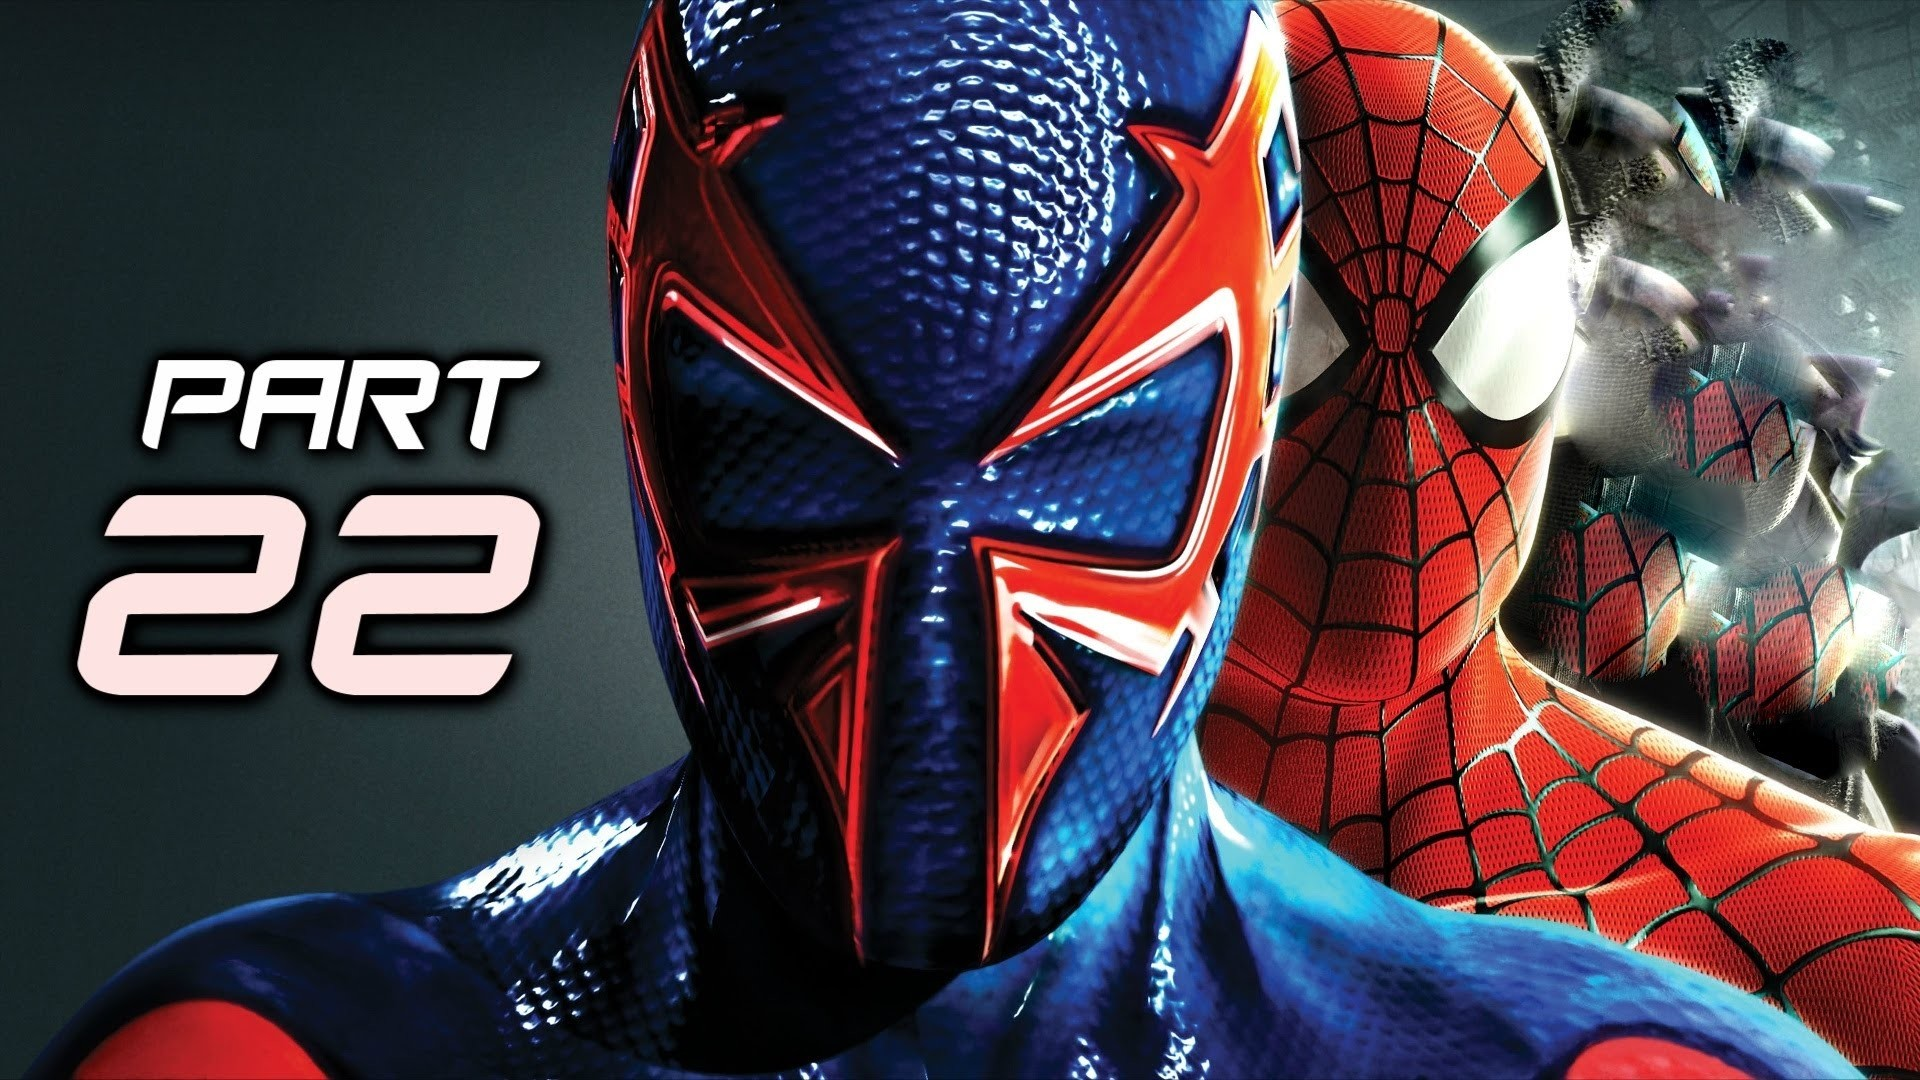 Game Of Spider Man Hd Wallpaper: Spider Man 2099 HD Wallpaper (78+ Images